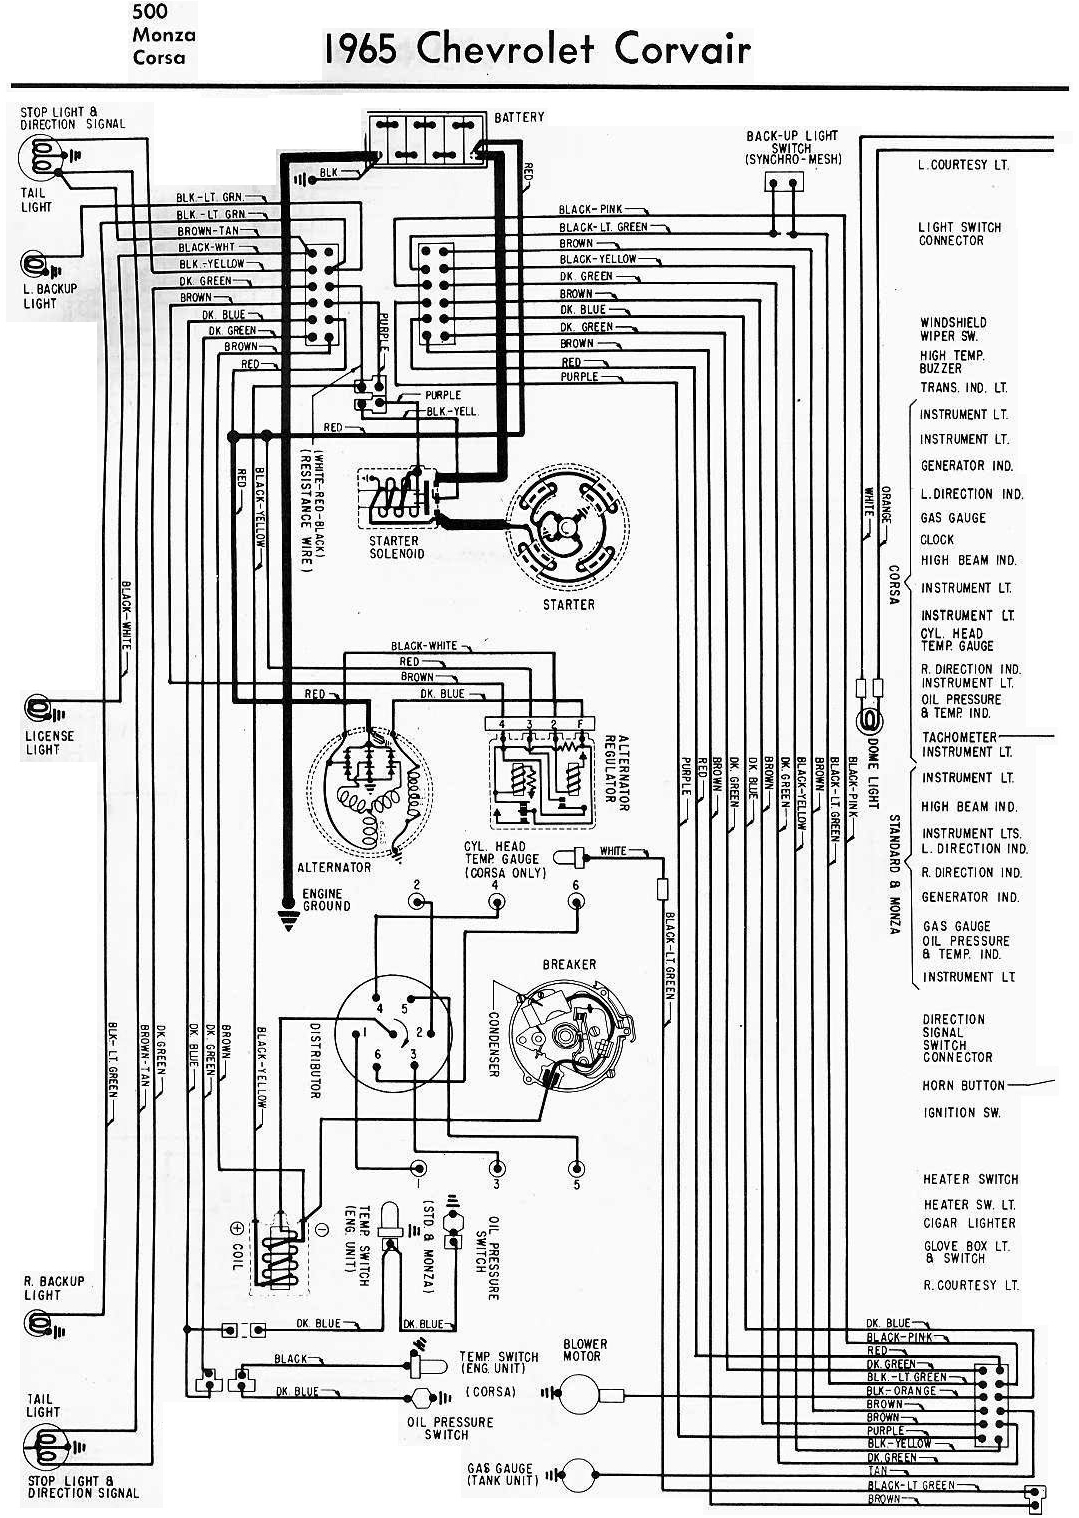 1965 chevrolet corvair electrical wiring diagram all about 1965 Chevy Truck Wiring Diagram 1965 chevrolet corvair electrical wiring diagram 1965 chevy truck wiring diagram